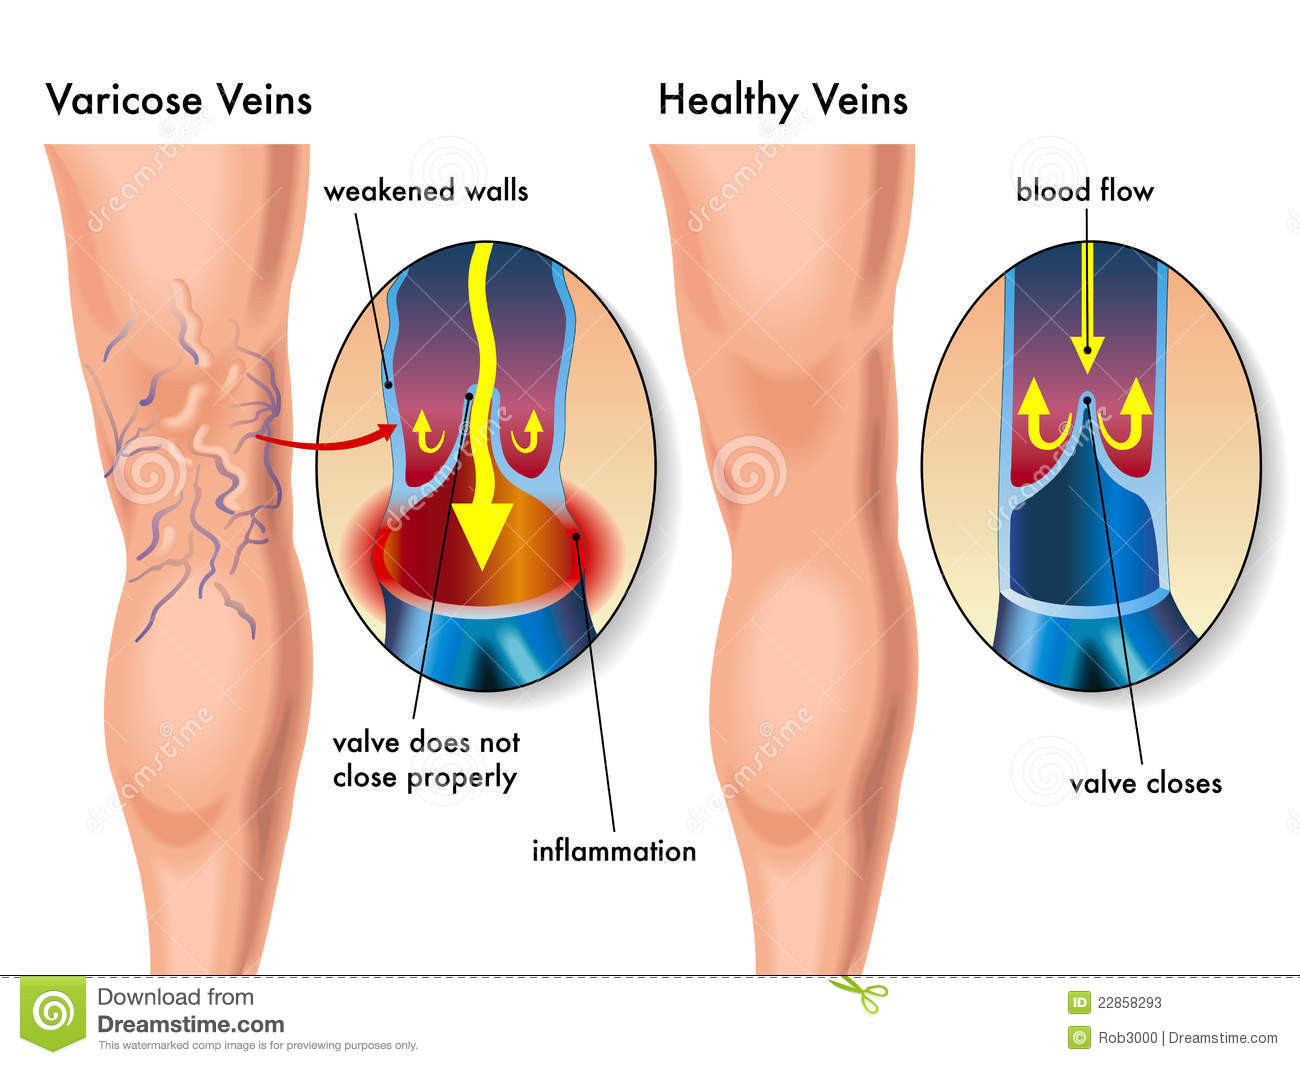 1000+ images about VARICOSE VEIN on Pinterest.